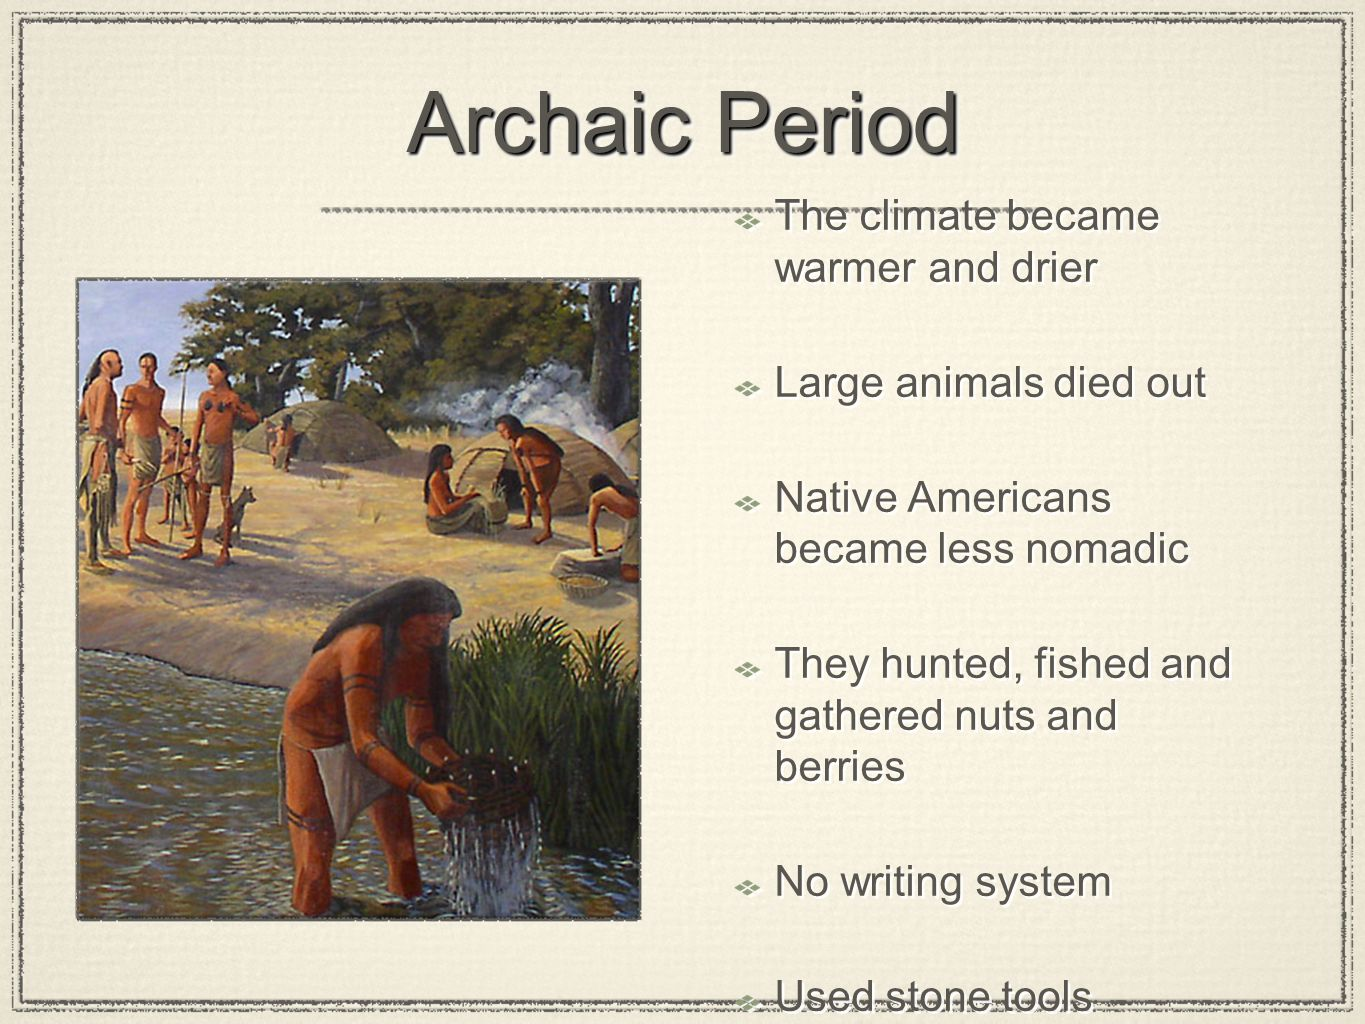 Archaic Period The climate became warmer and drier